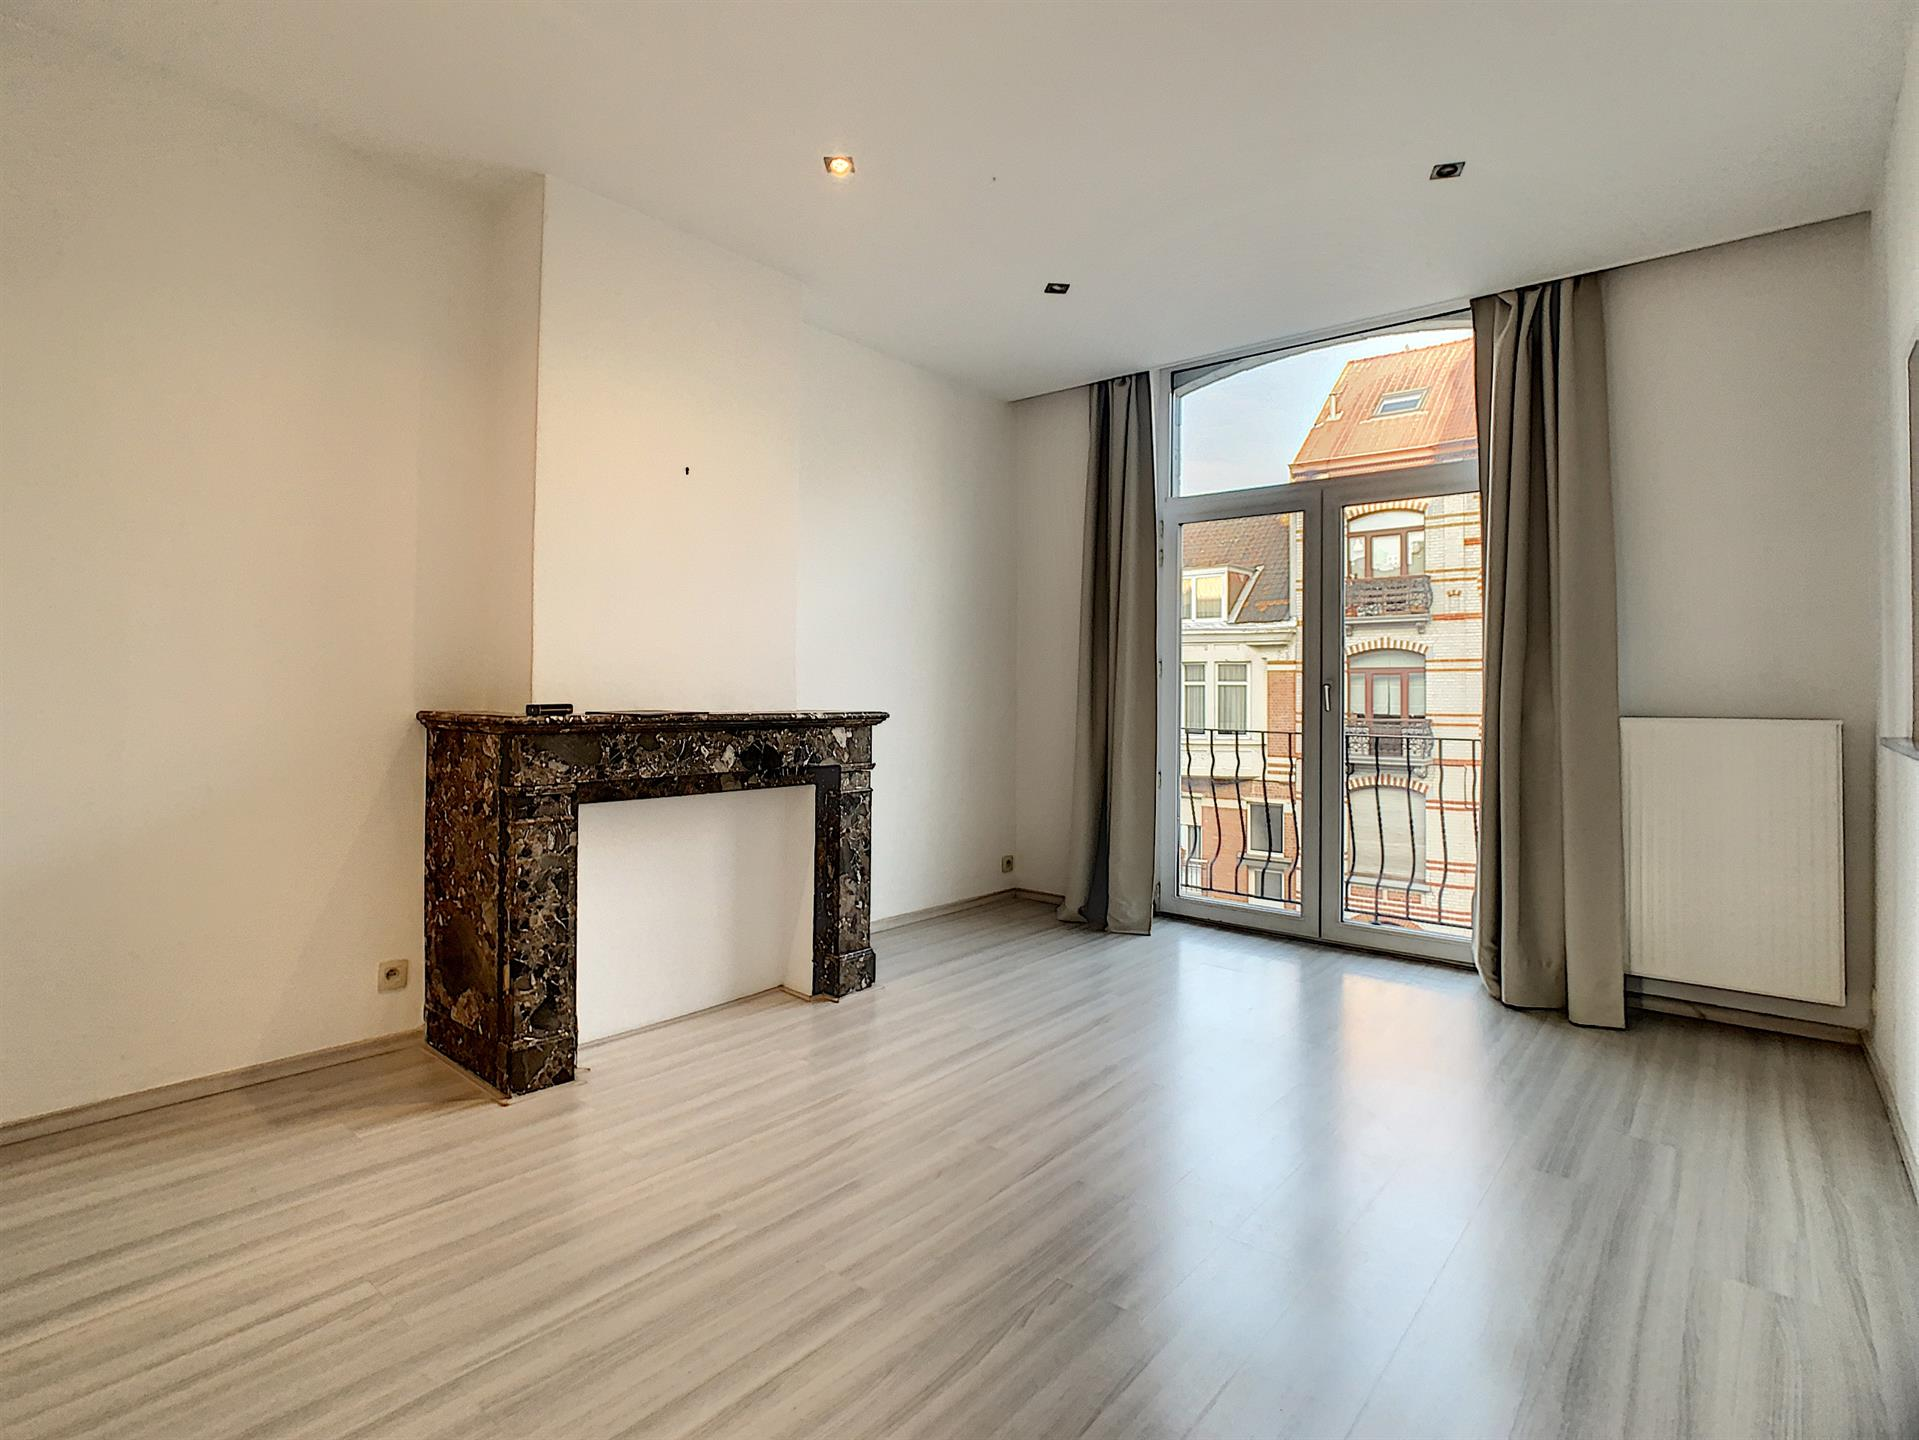 Appartement - Forest - #4242627-1